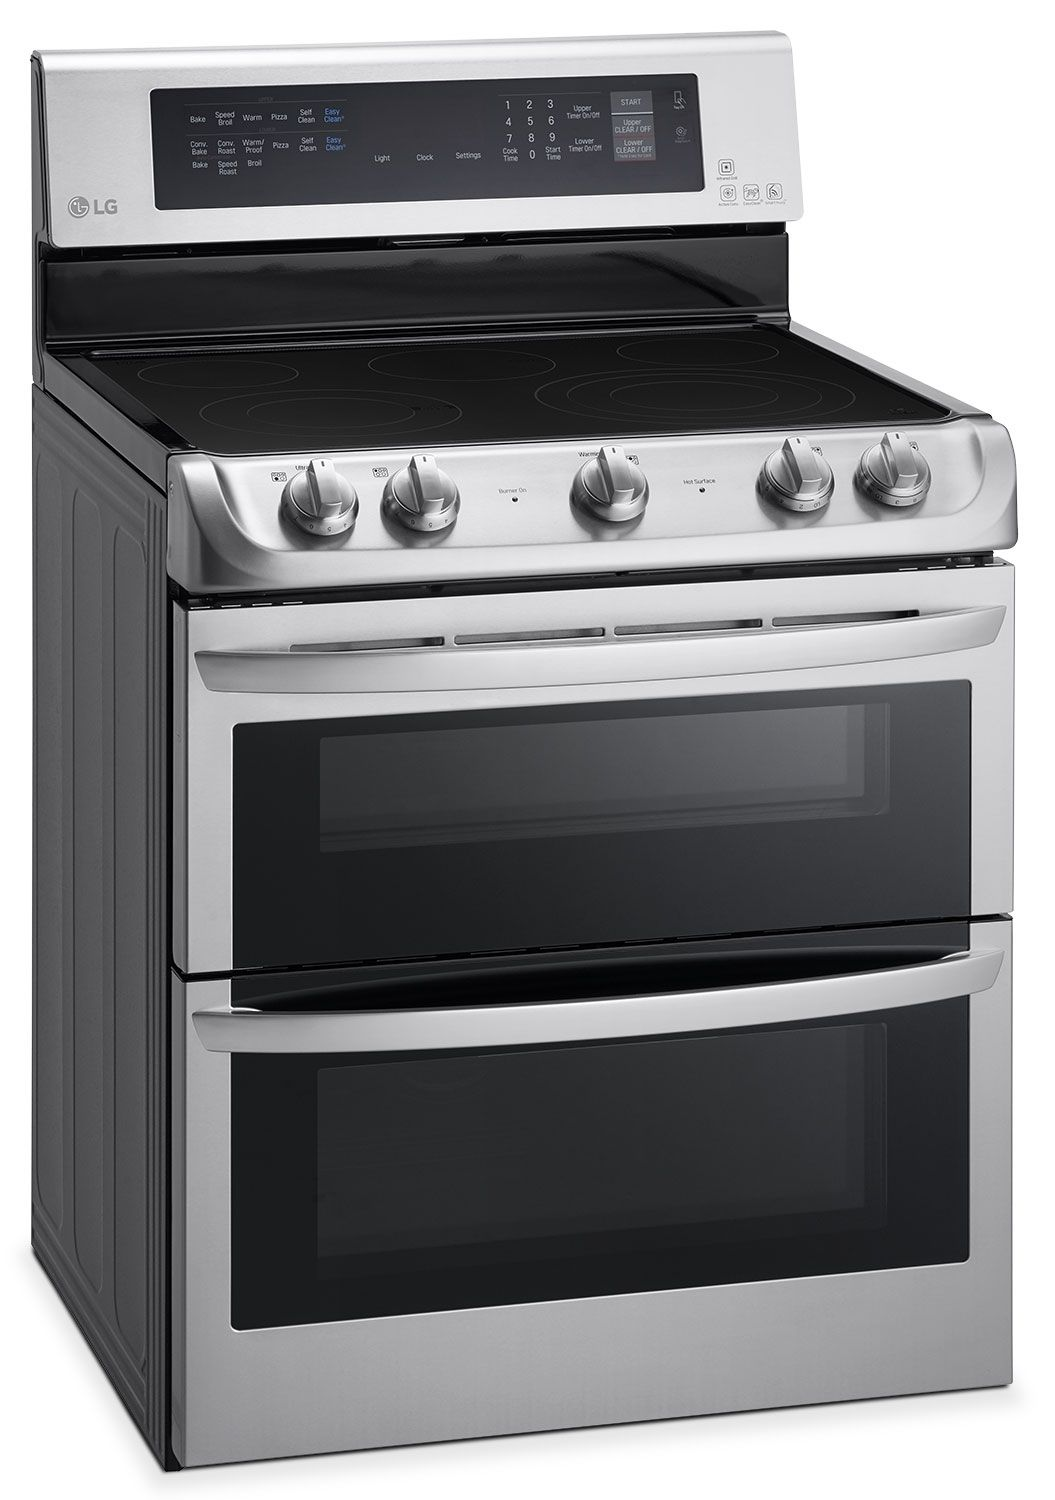 Lg 7 3 Cu Ft Electric Range With Double Oven Stainless